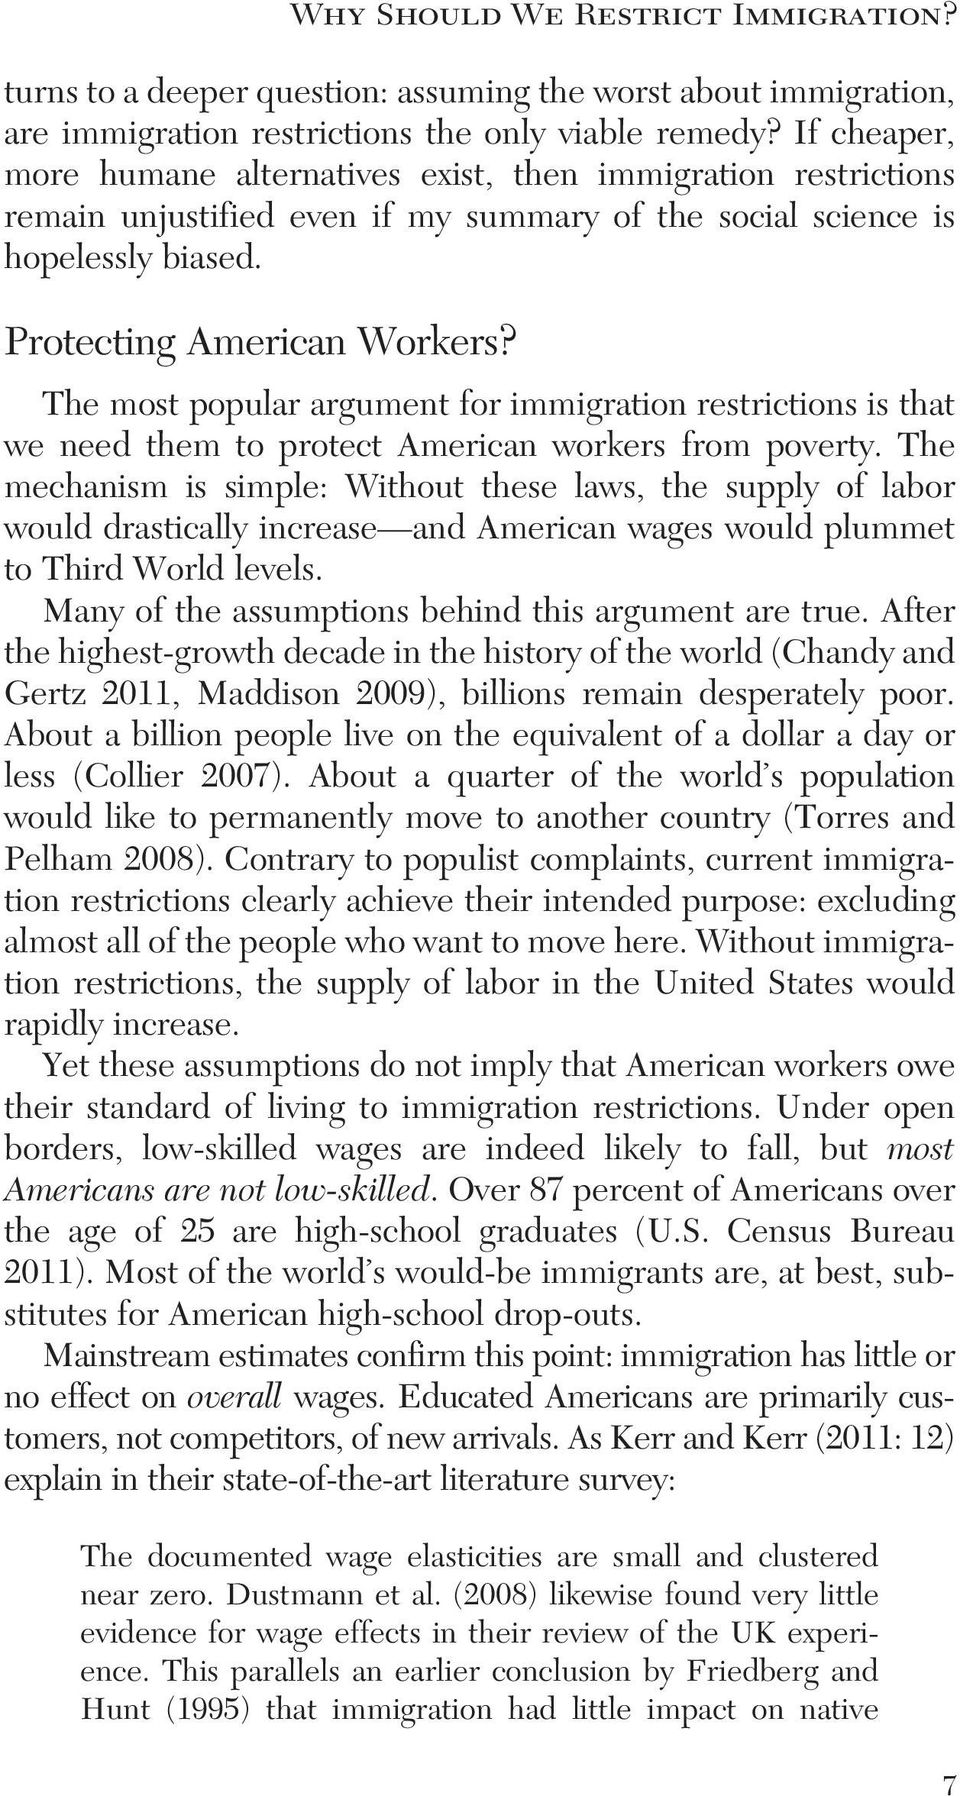 The most popular argument for immigration restrictions is that we need them to protect American workers from poverty.